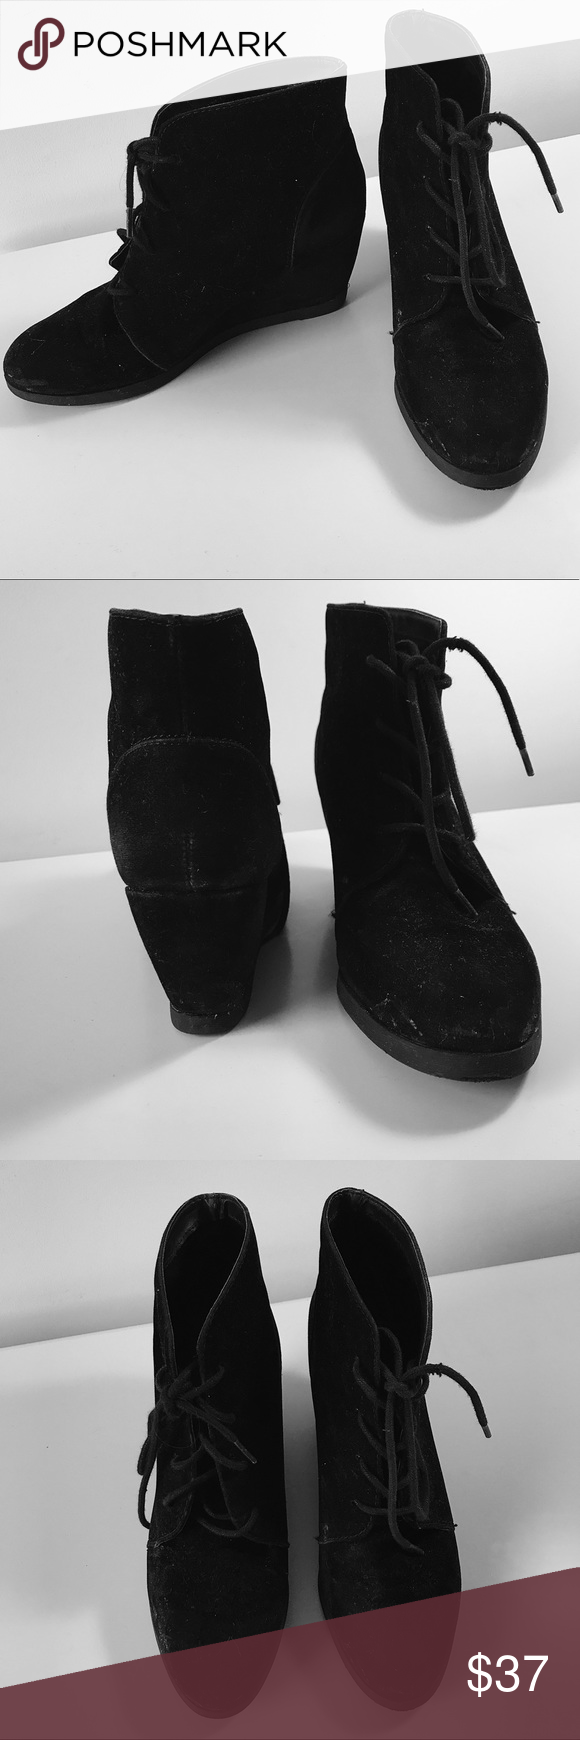 MADDEN GIRL BLACK SUEDE BOOTIES. SIZE 8 MADDEN GIRL black suede lace-up ankle booties. Size 8. Slightly worn but very sturdy and still in good condition! Very comfortable and super versatile. Completes any winter outfit. Madden Girl Shoes Ankle Boots & Booties